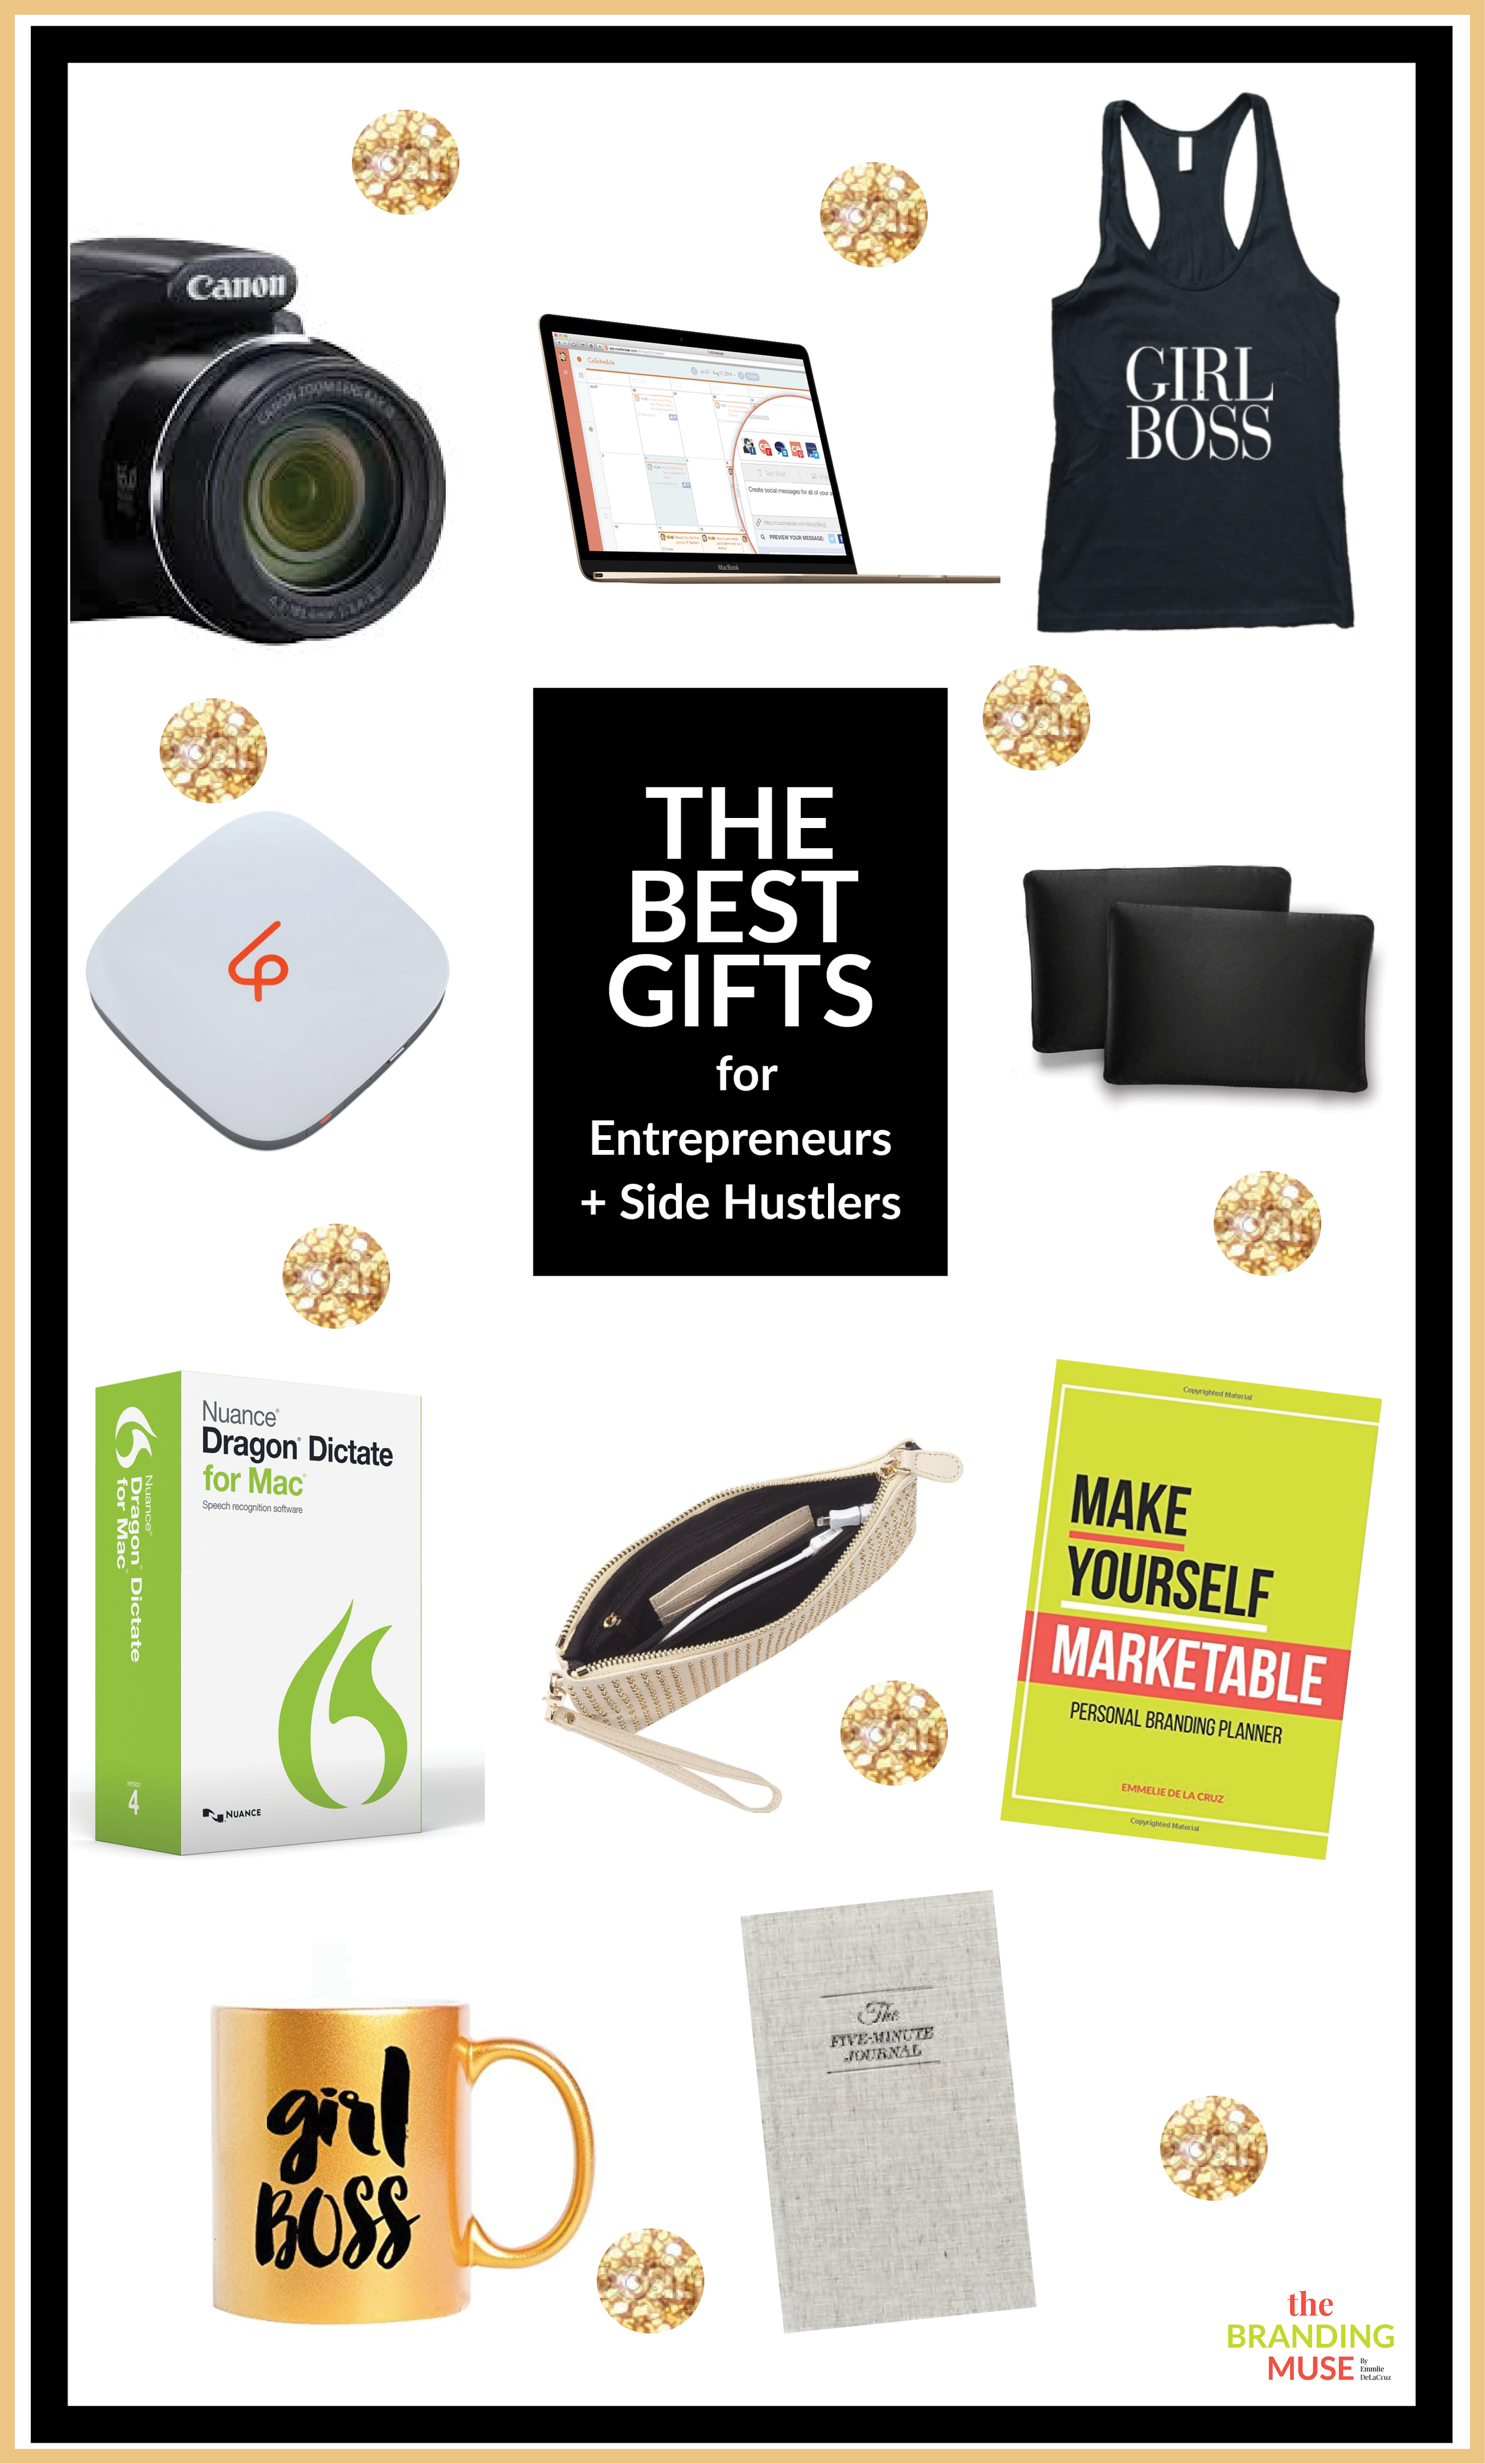 2015 Gift Guide FOR ENTREPRENEUERS, freelancers, side hustlers and girlbosses.